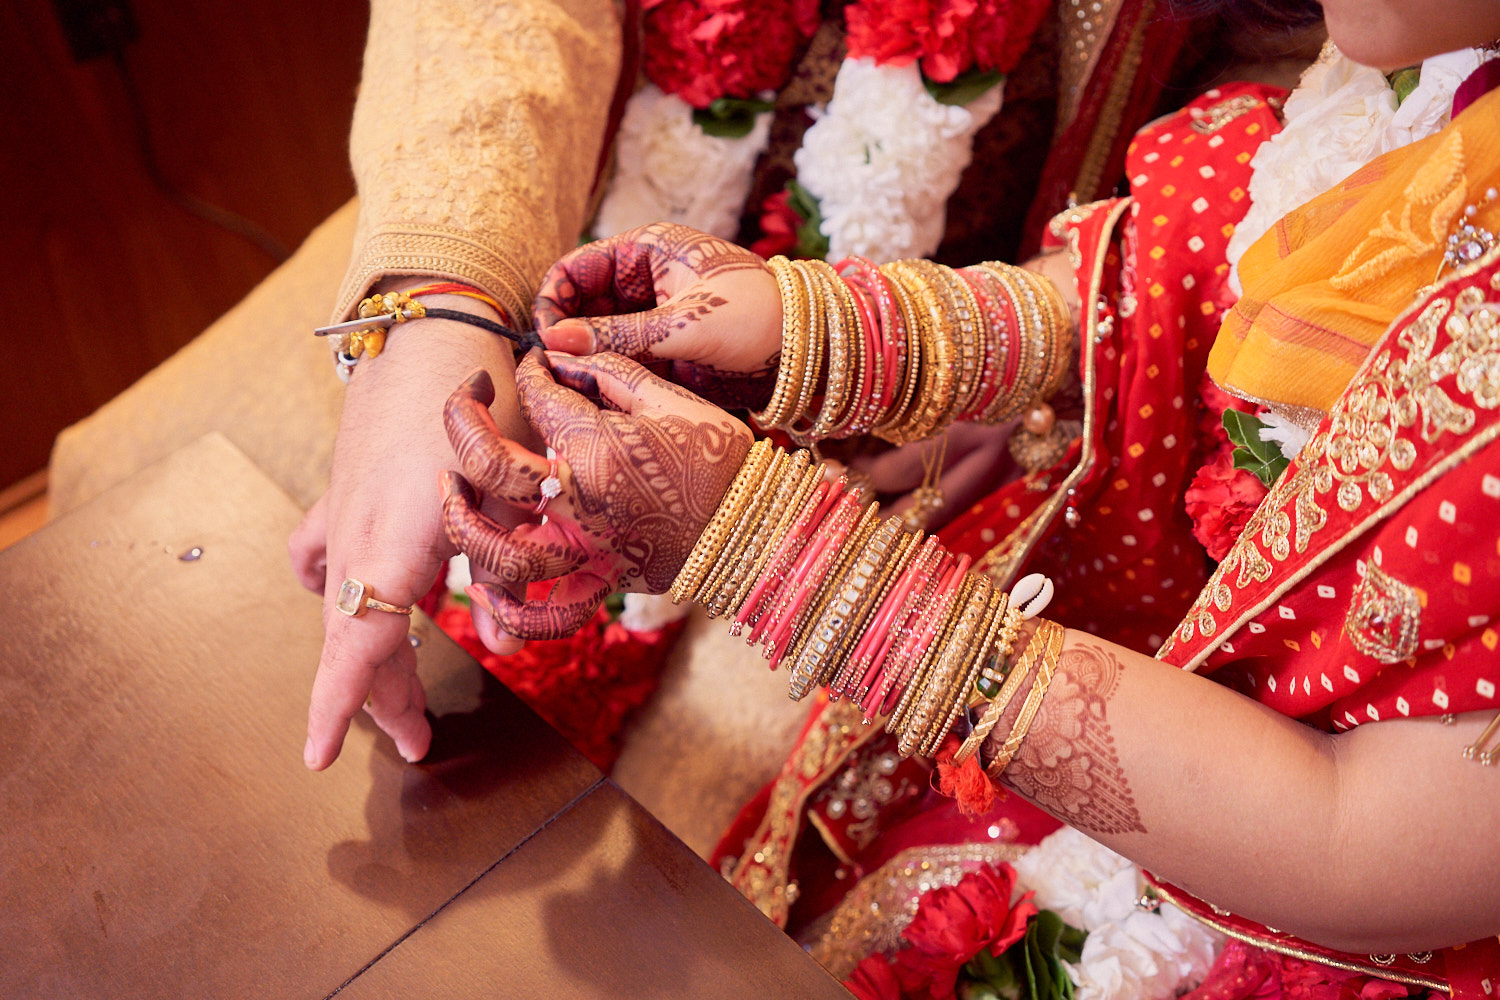 Open the gaana ( the holy thread). Brides generally get a pass by using both hands whereas groom is allowed to use only one hand..:)